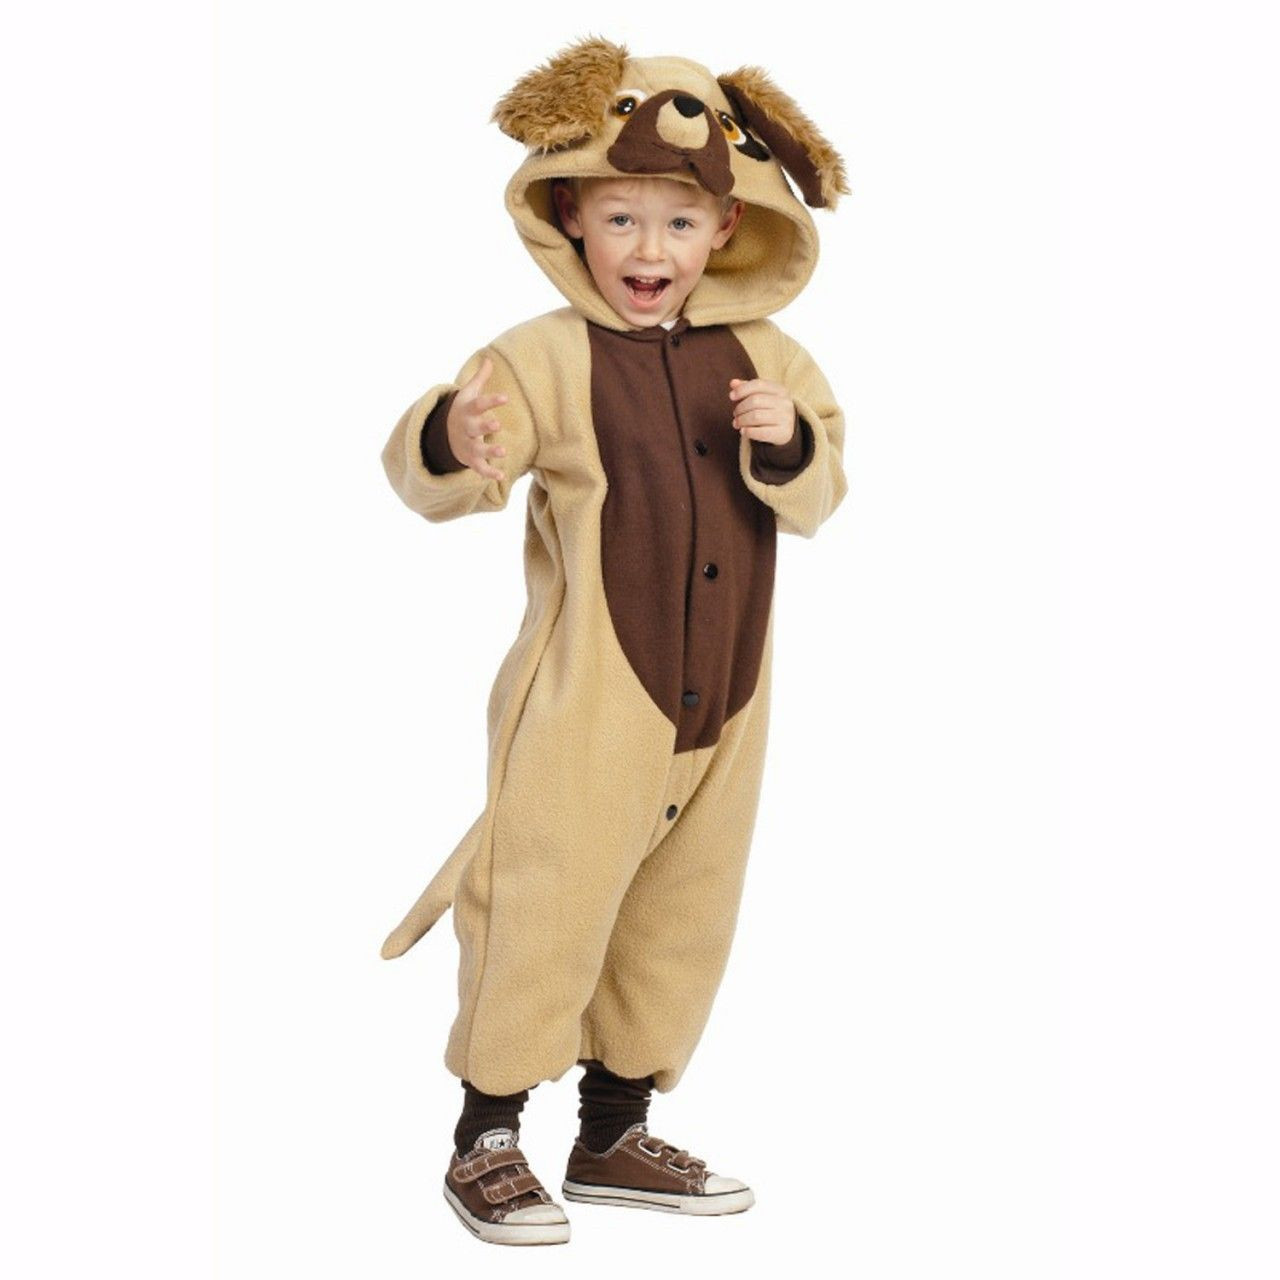 DIY Dog Costume For Kids  Pin by Nancy Meadows on Costumes